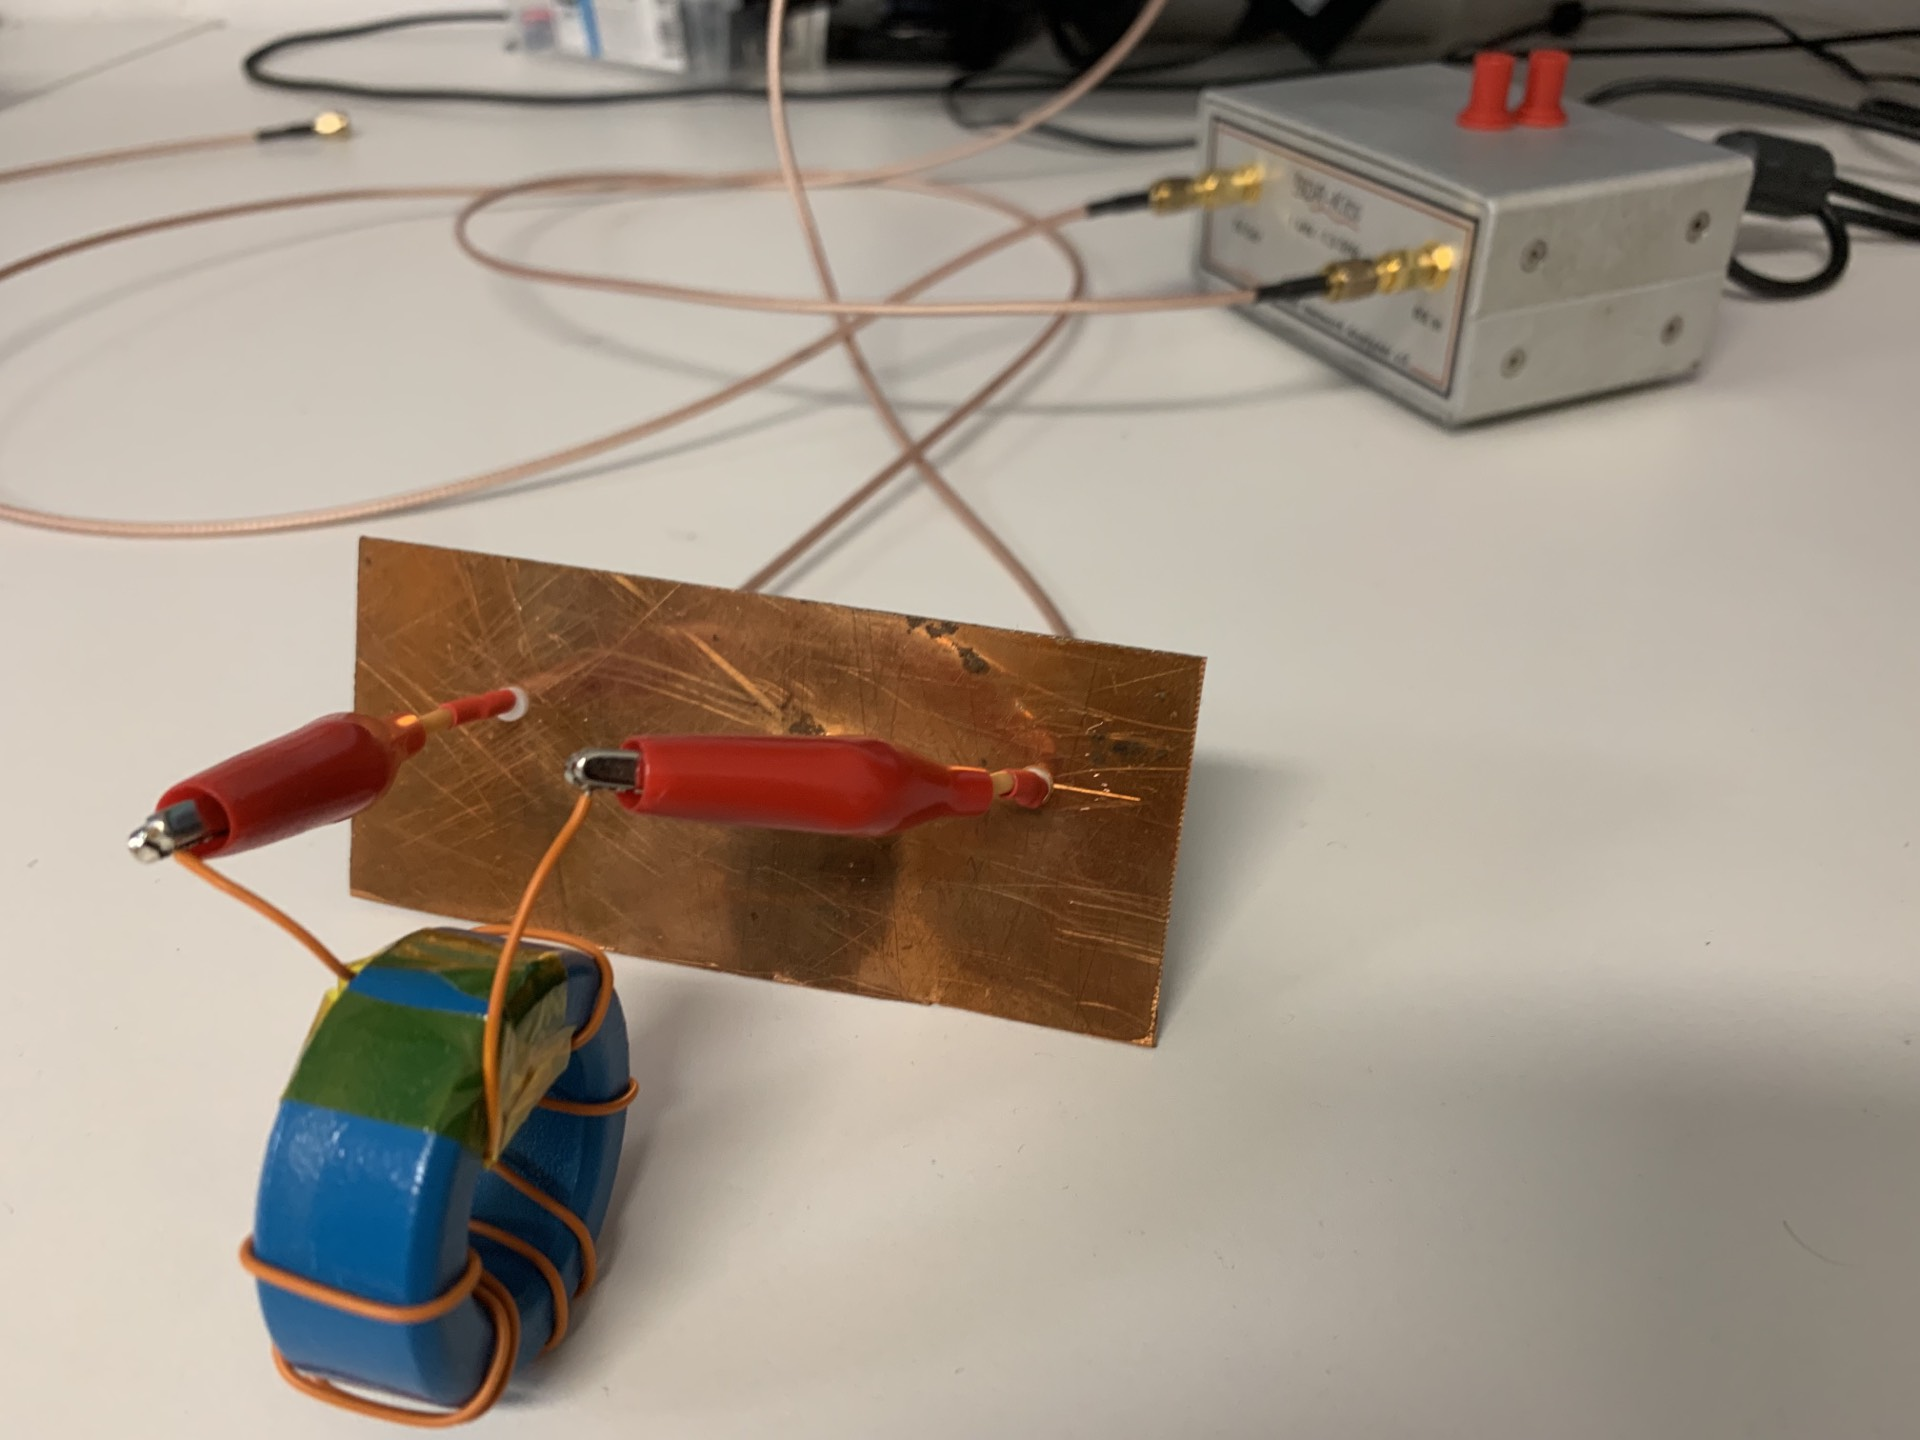 convinience test jig for measuring insertion loss (S21)